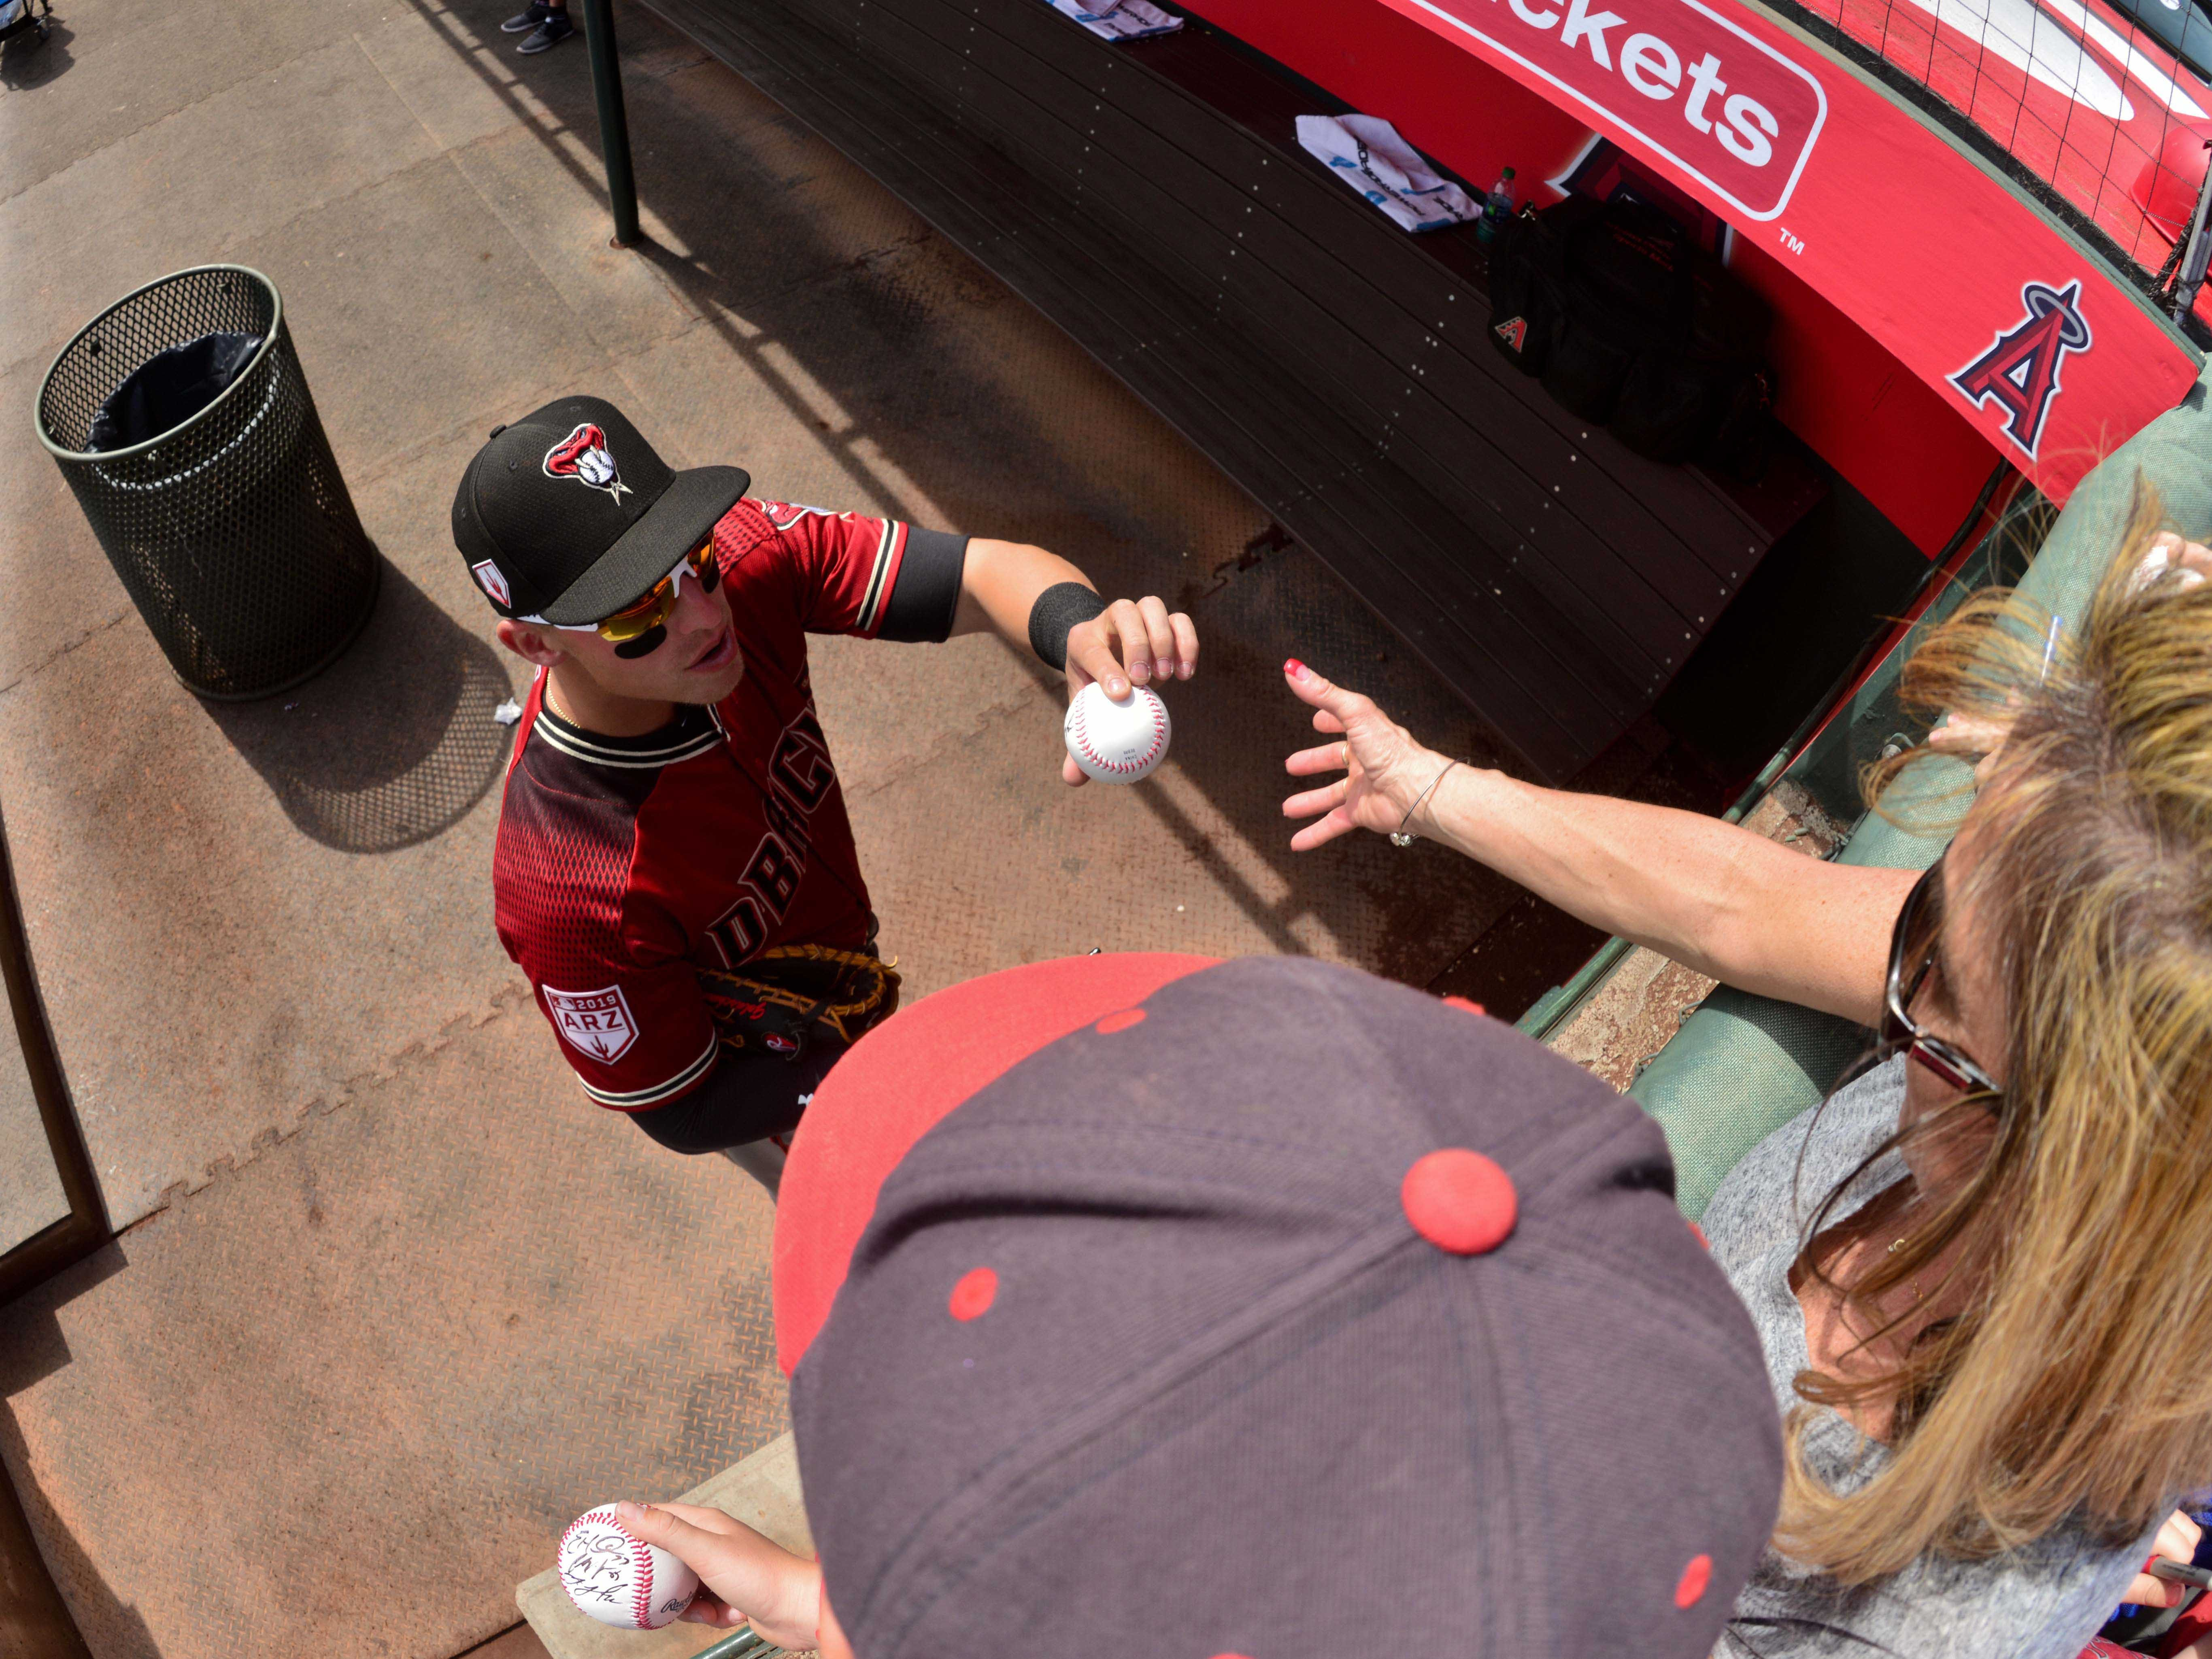 Mar 15, 2019; Tempe, AZ, USA; Arizona Diamondbacks third baseman Jake Lamb (22) signs autographs for fans prior to the game against the Los Angeles Angels at Tempe Diablo Stadium. Mandatory Credit: Matt Kartozian-USA TODAY Sports